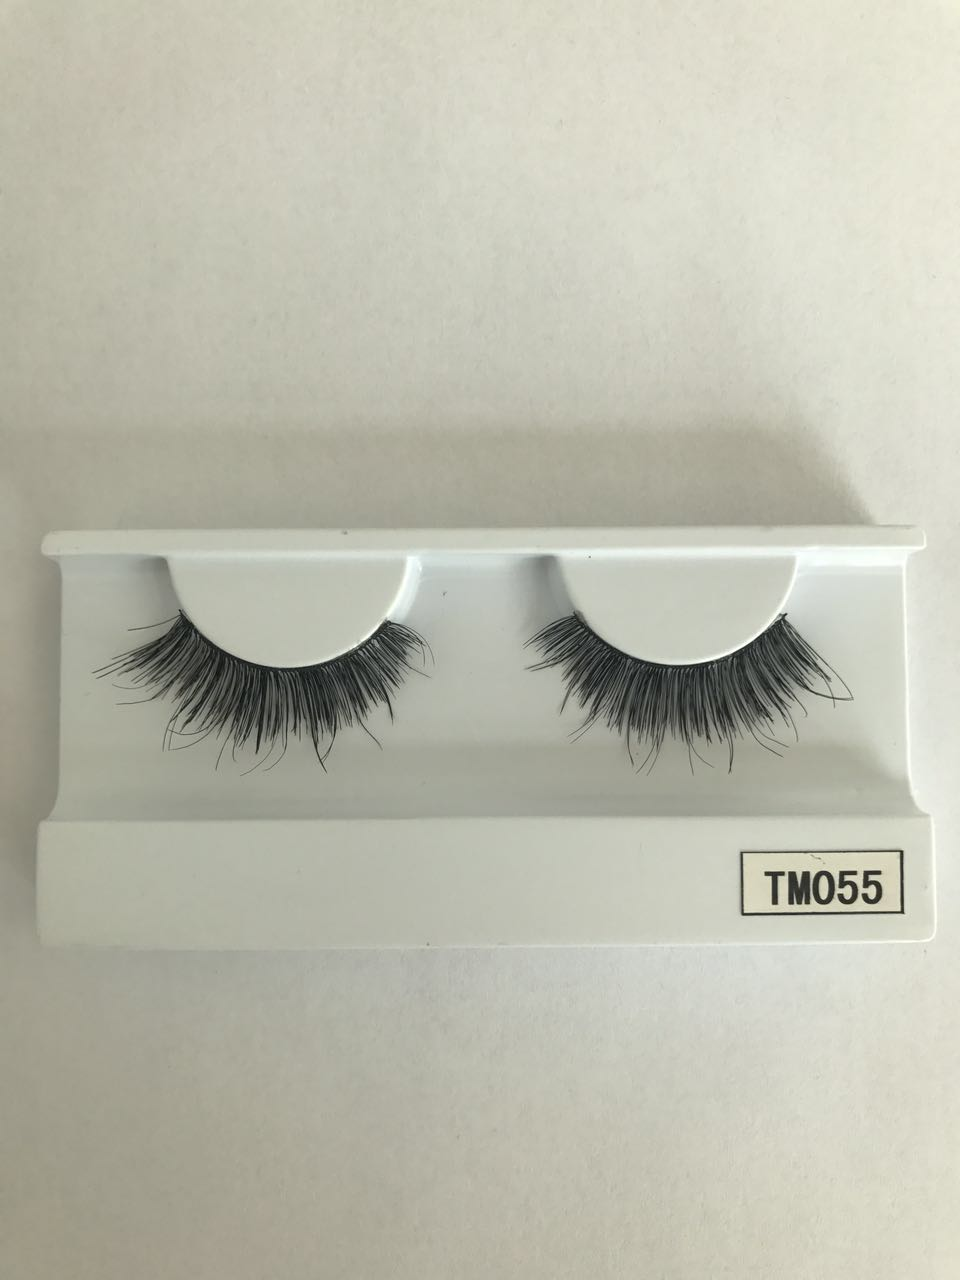 Premium natural 3D human hair false eye lashes with custom packaging